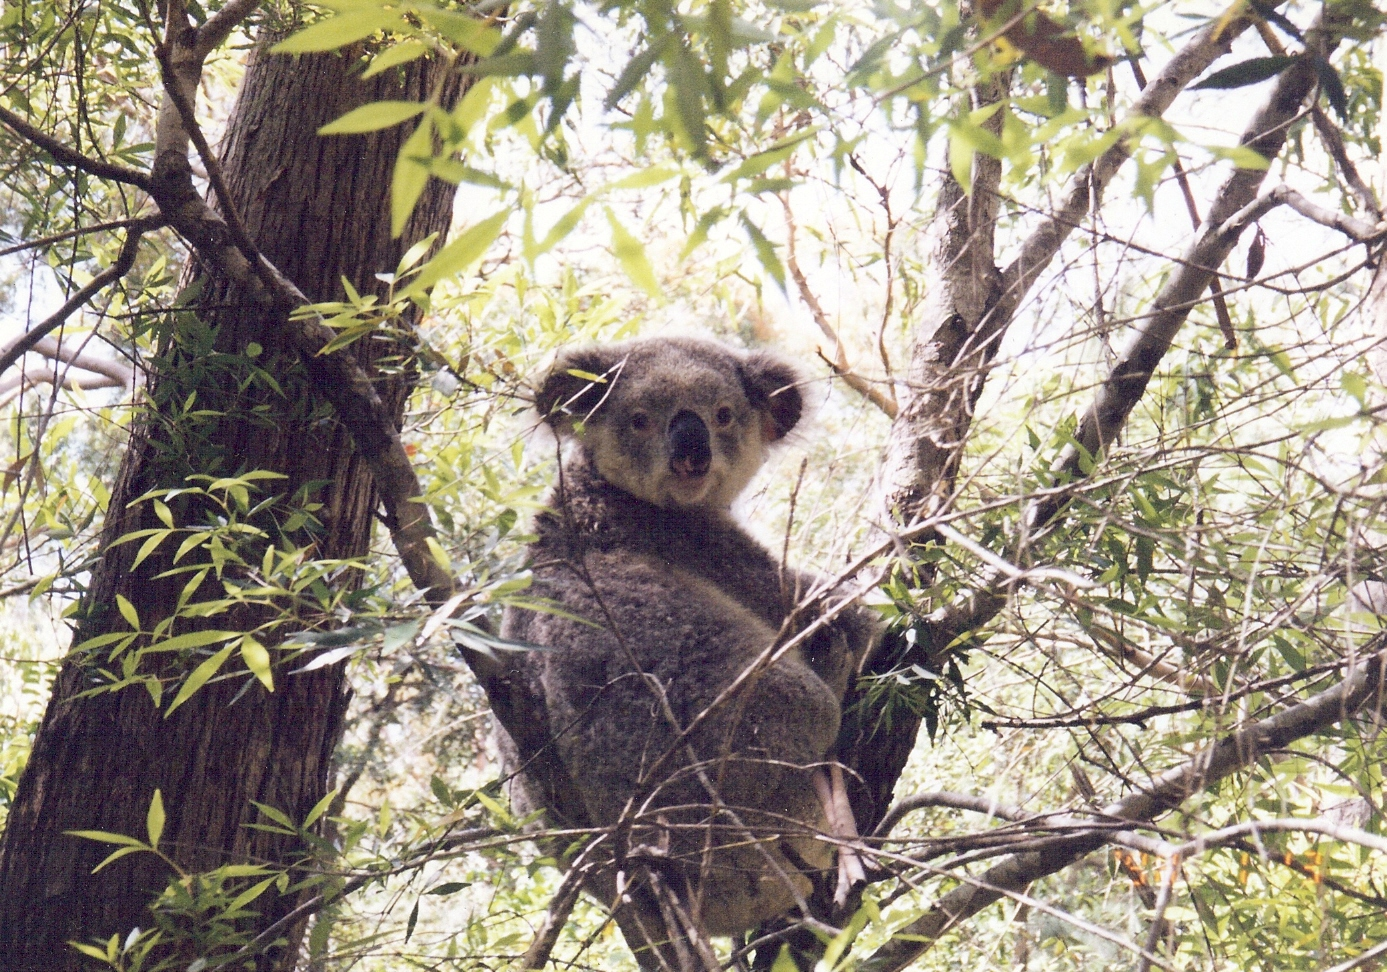 Pity About the Australian Koala! | Roslyn Motter ...